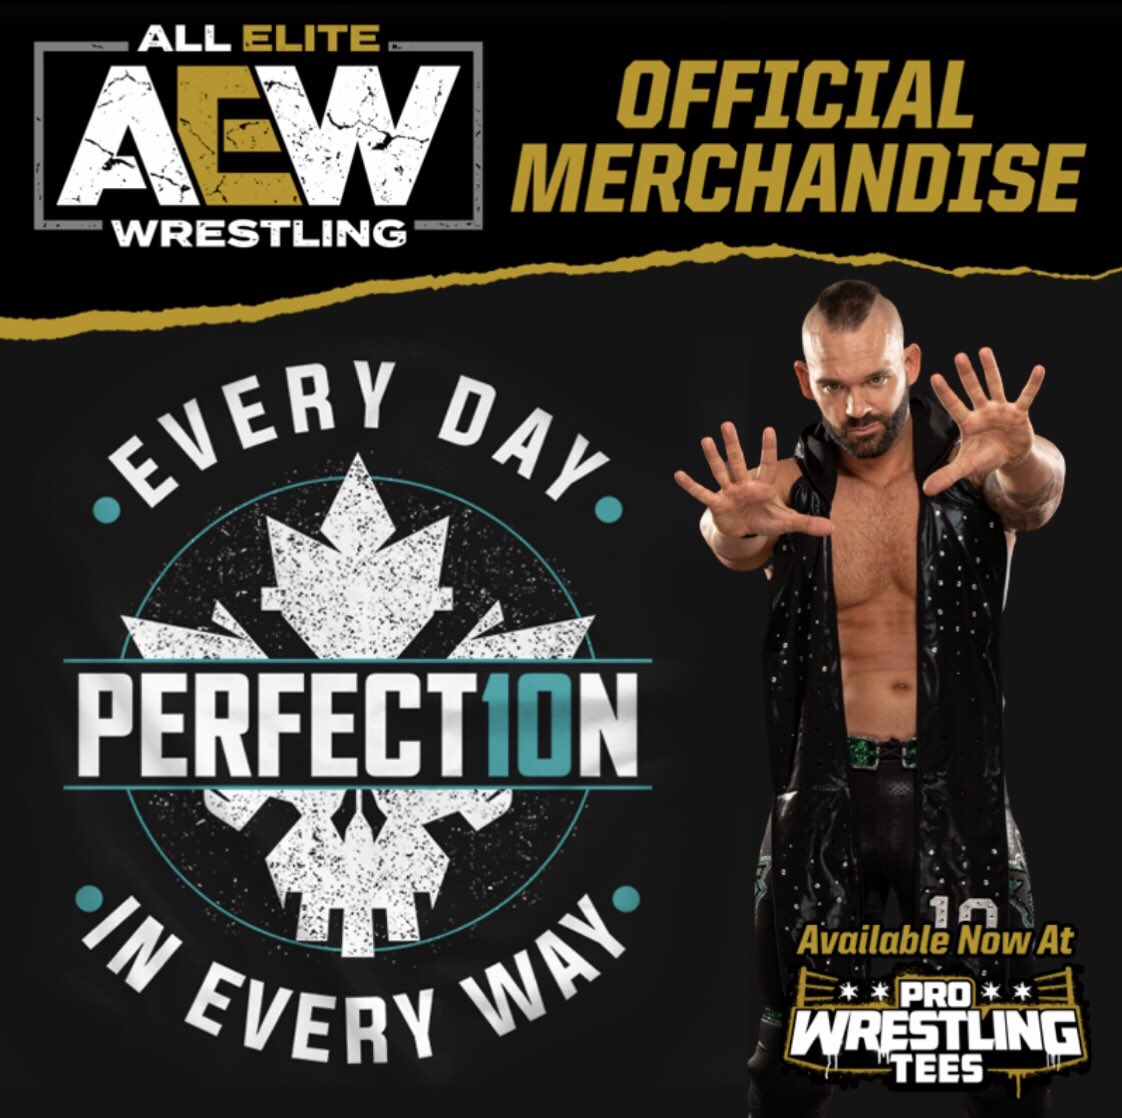 If you're a supporter of #TheChairman and #Perfect10n well, you know what to do.   If you're a doubter, and don't @ me when talking shit...🖕🏻... now go buy a shirt you plug.   http://Prowrestlingtees.com/AEW